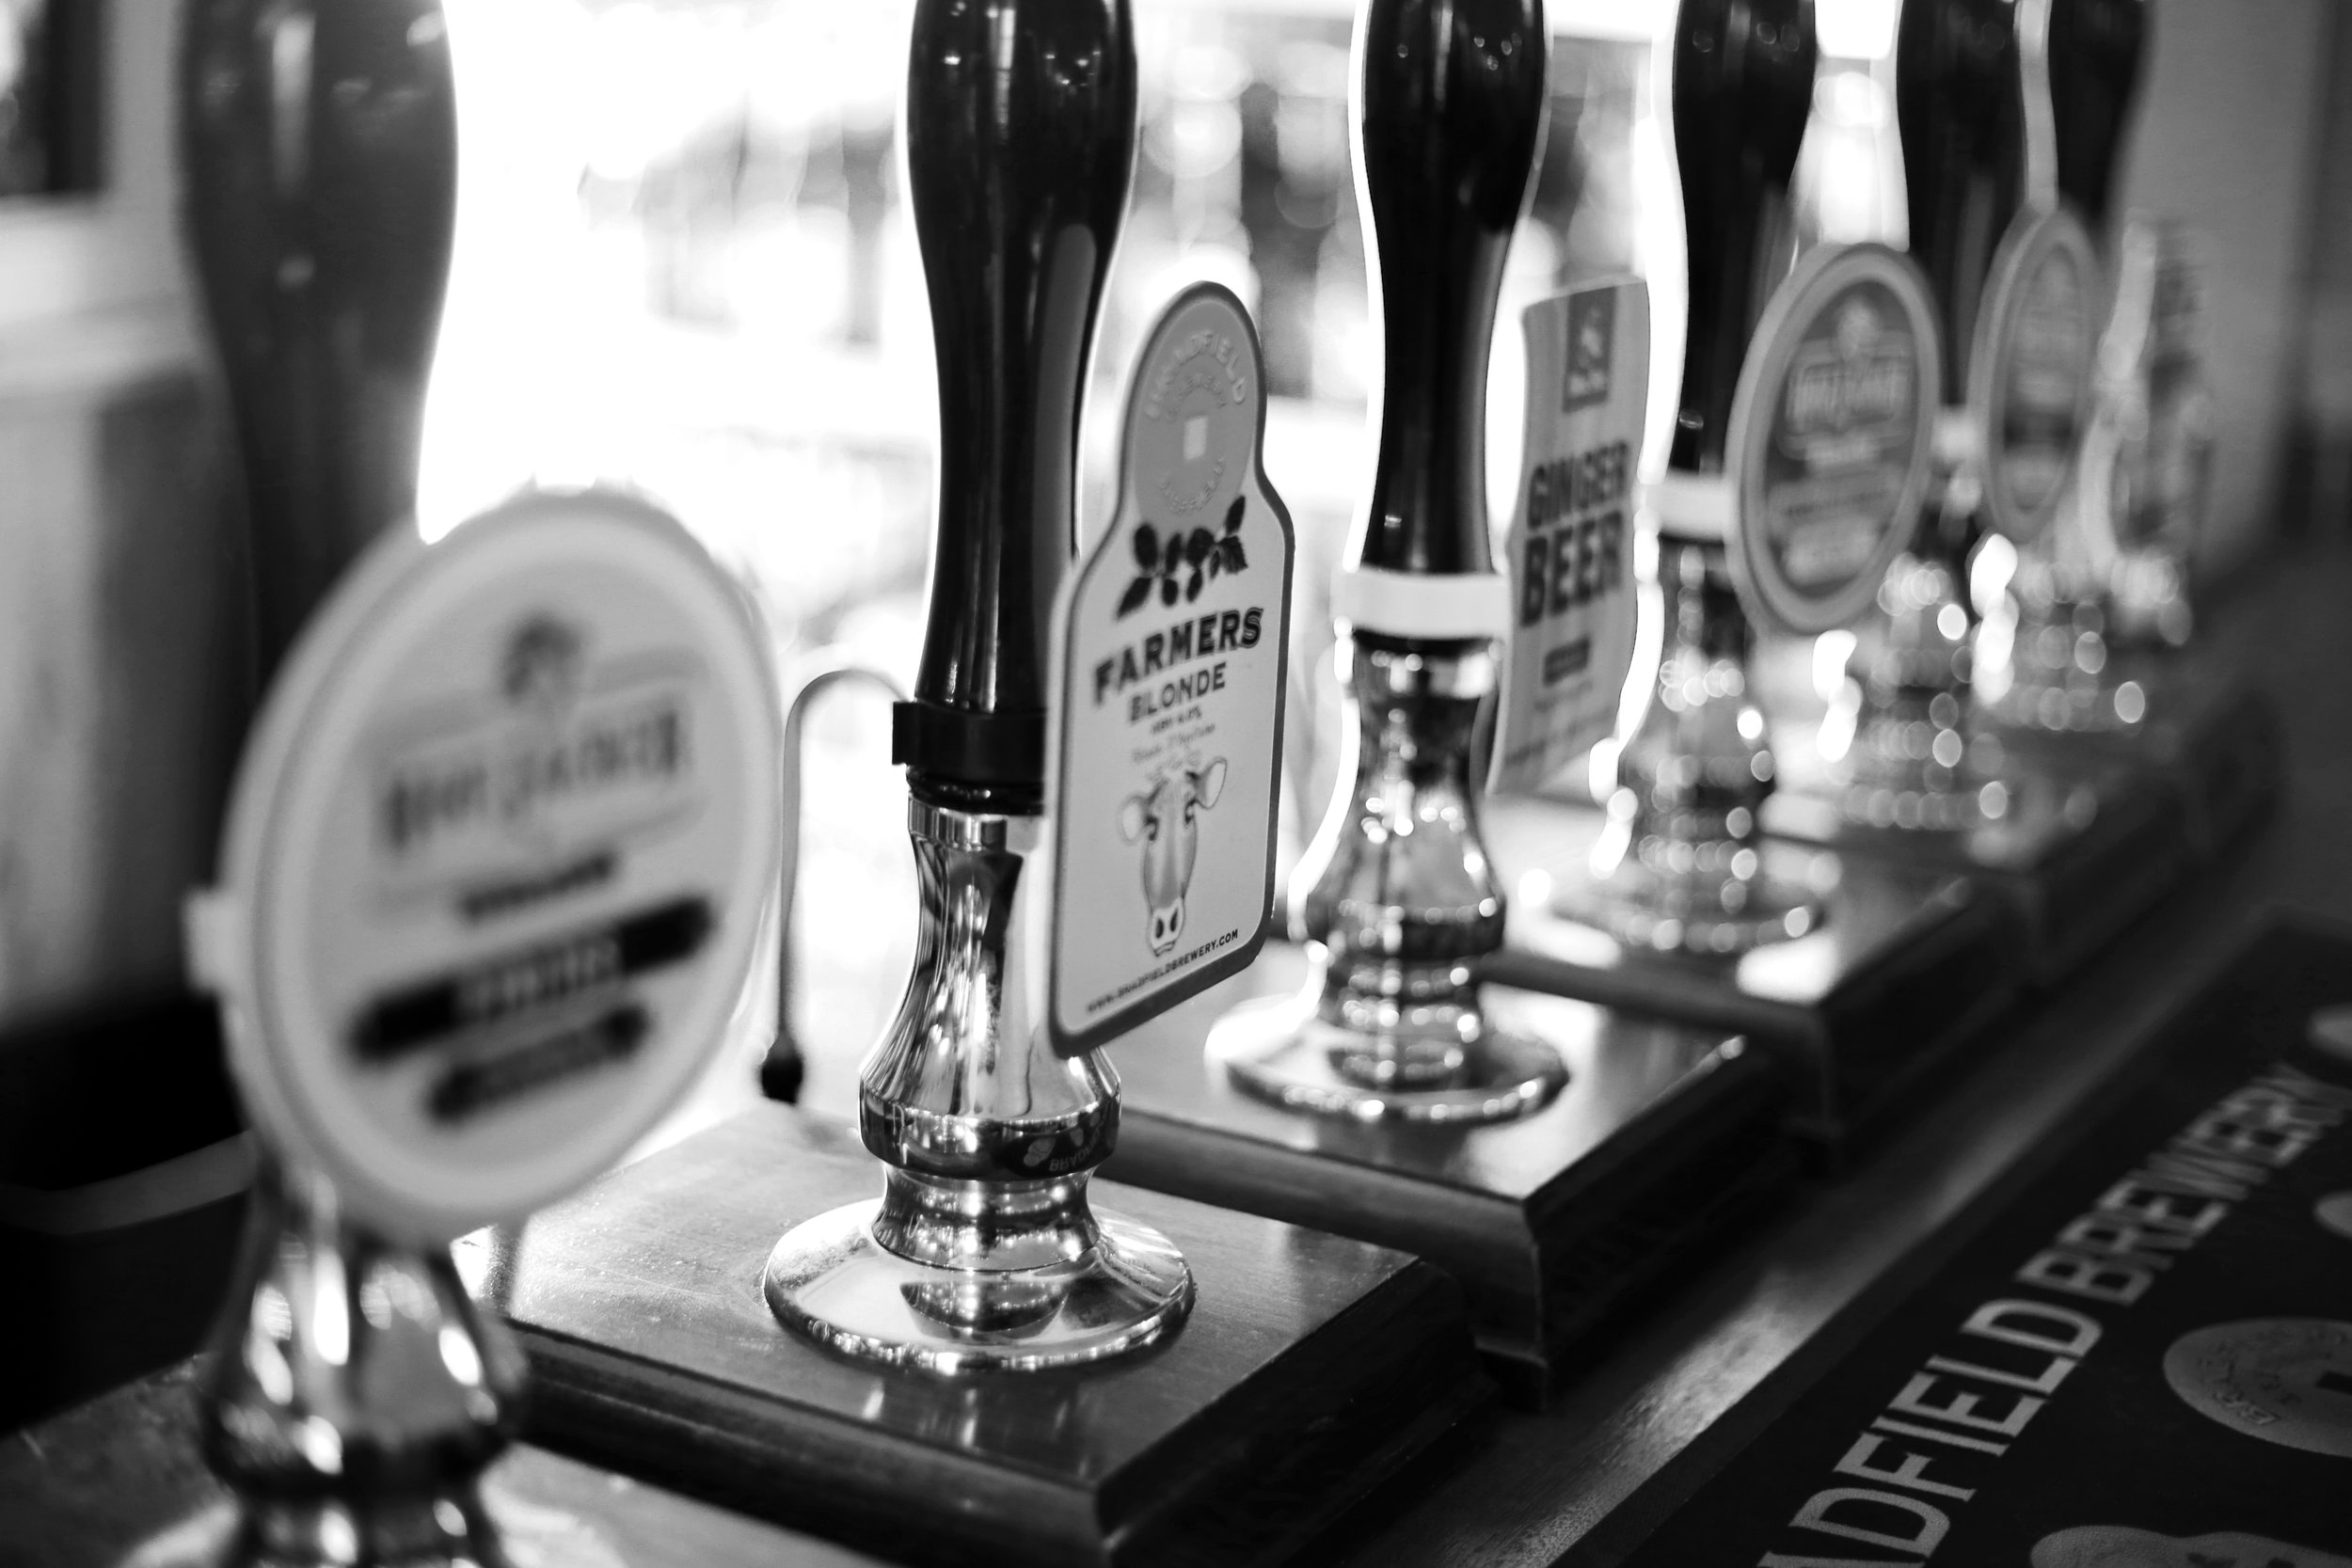 Dromfiled Arms Beer - Pump Clips